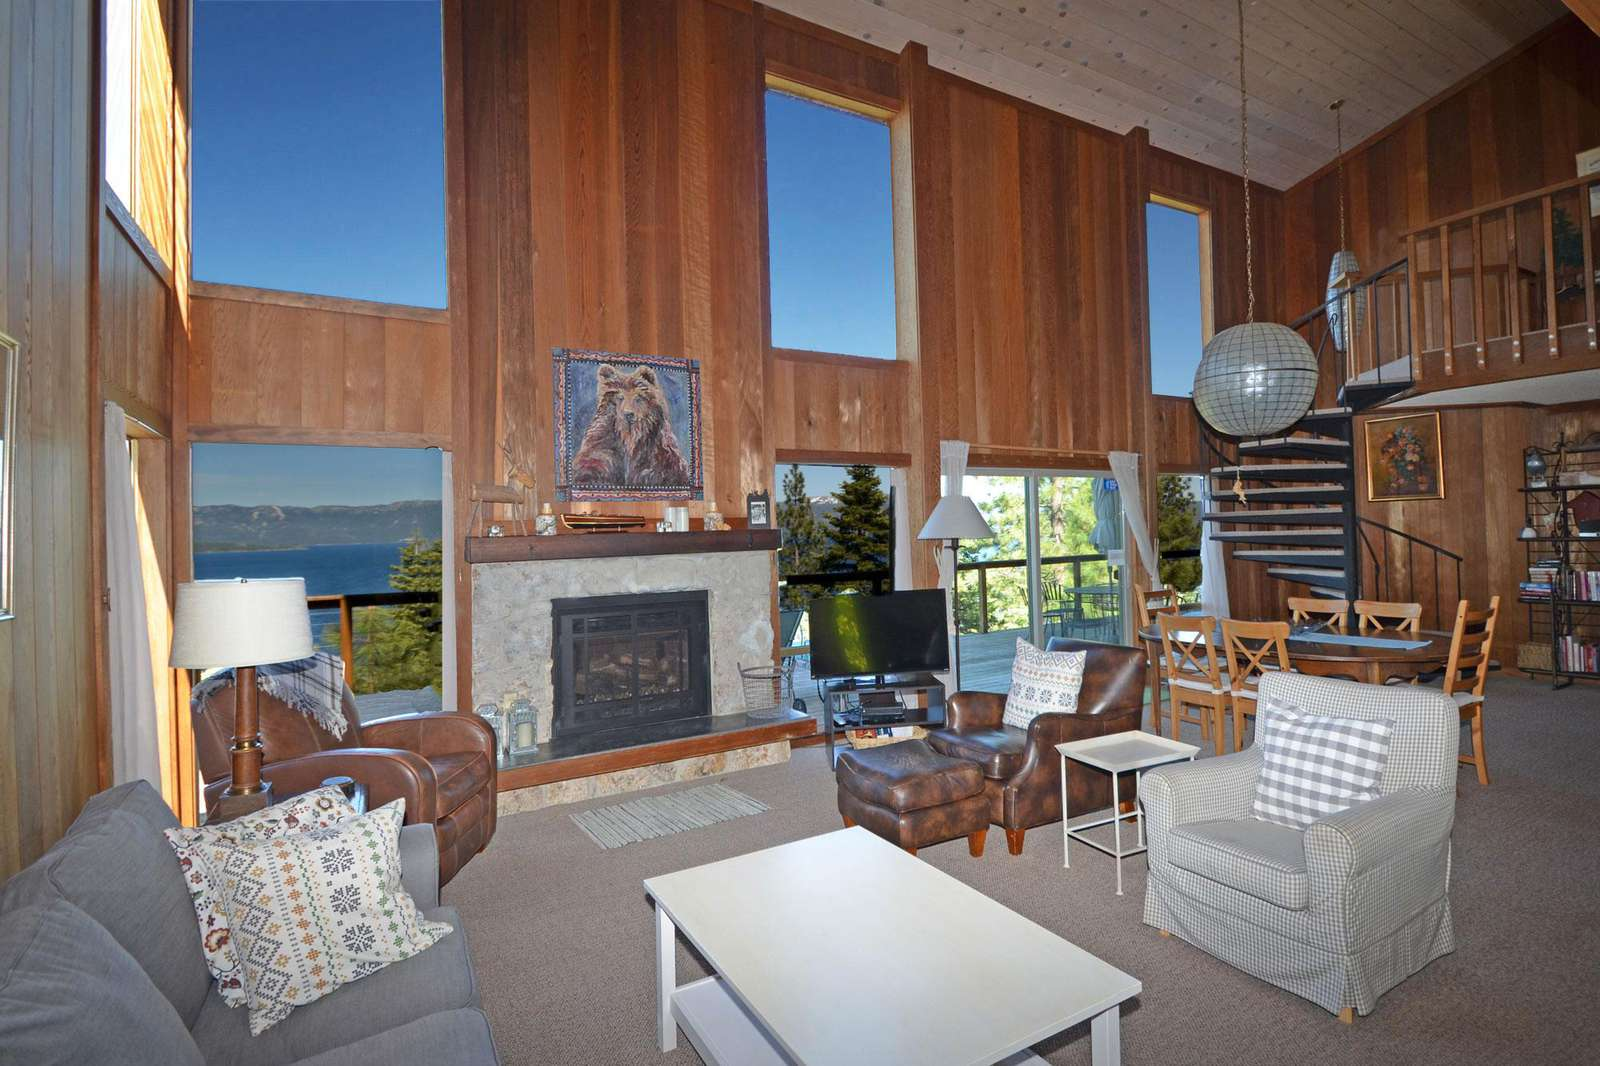 Cozy Living Room with Views of Lake Tahoe